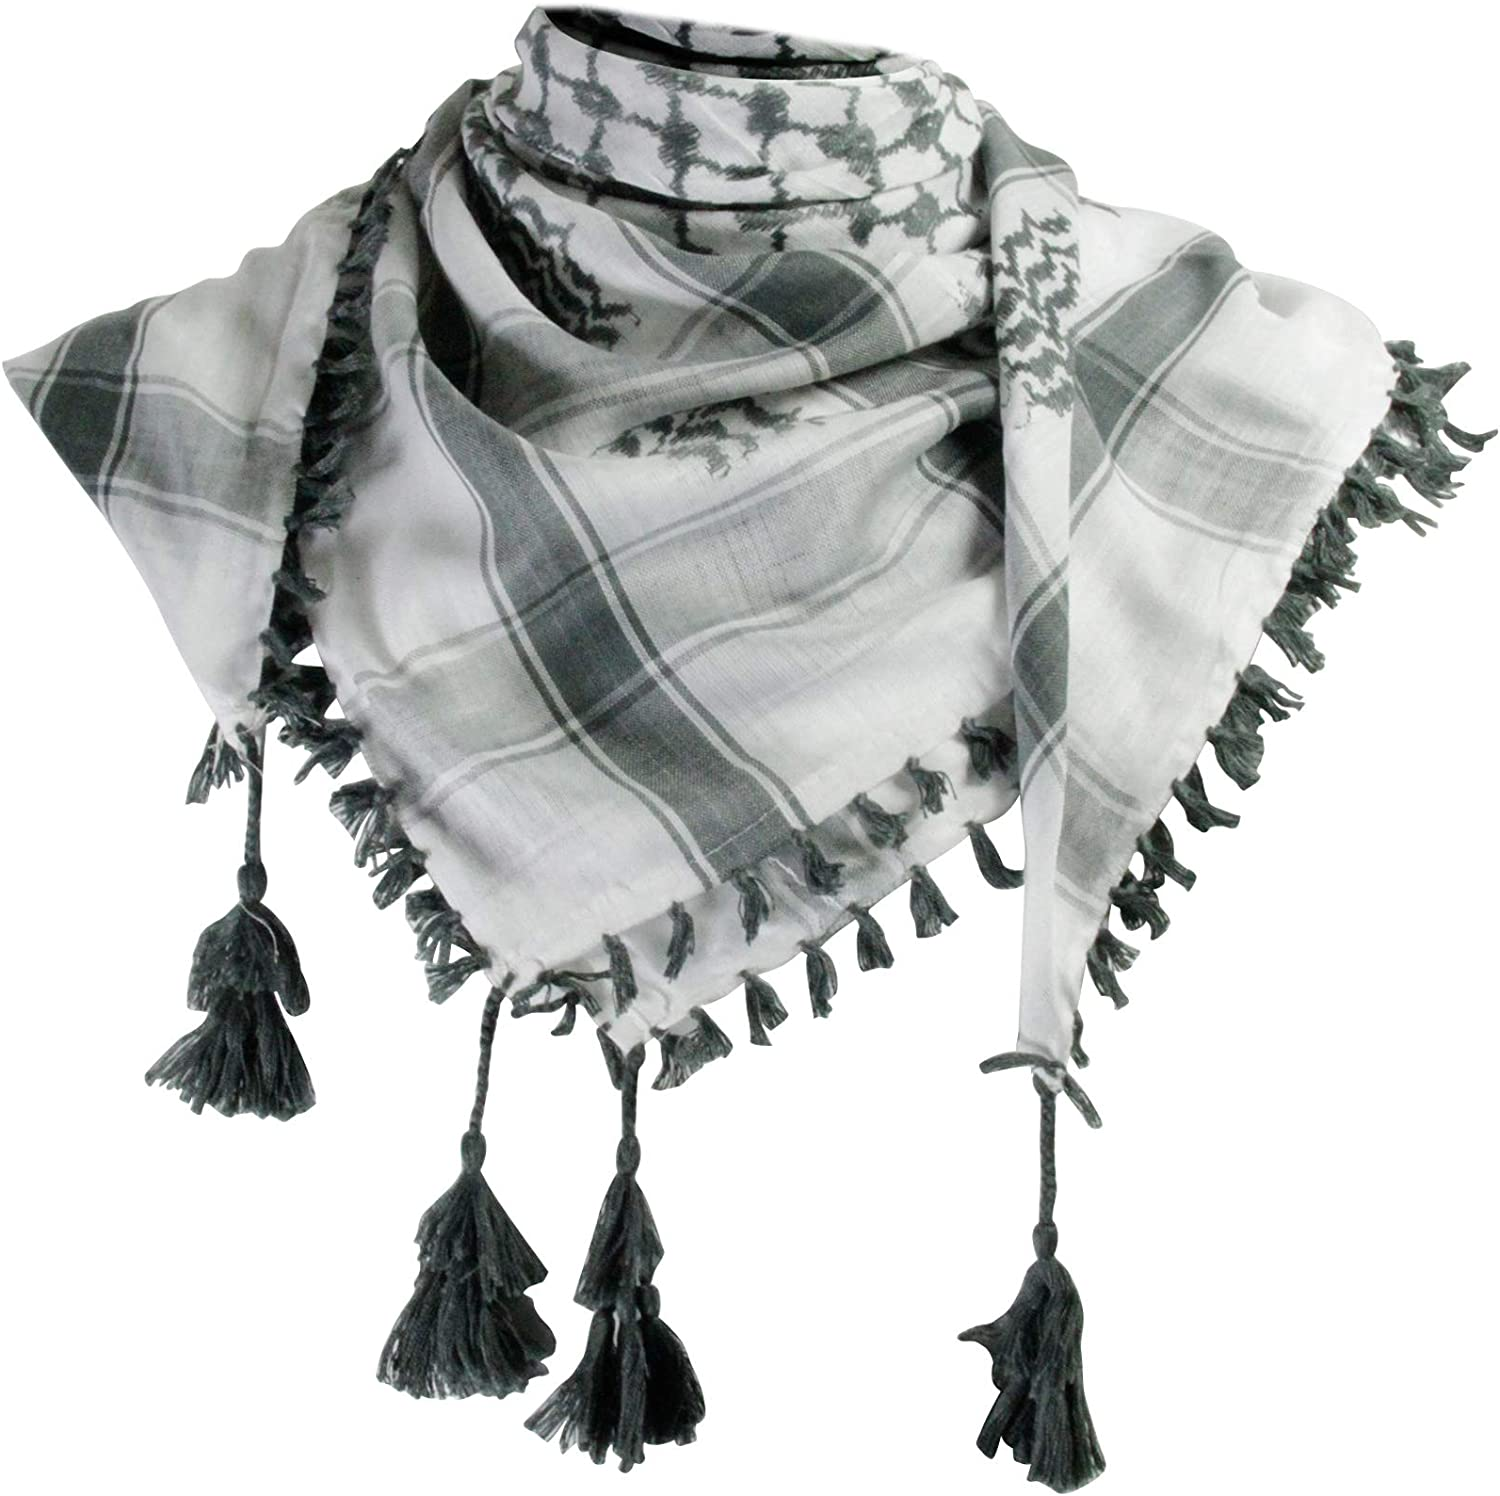 White and Gray Shemagh Tactical Desert Scarf Keffiyeh with Tassels